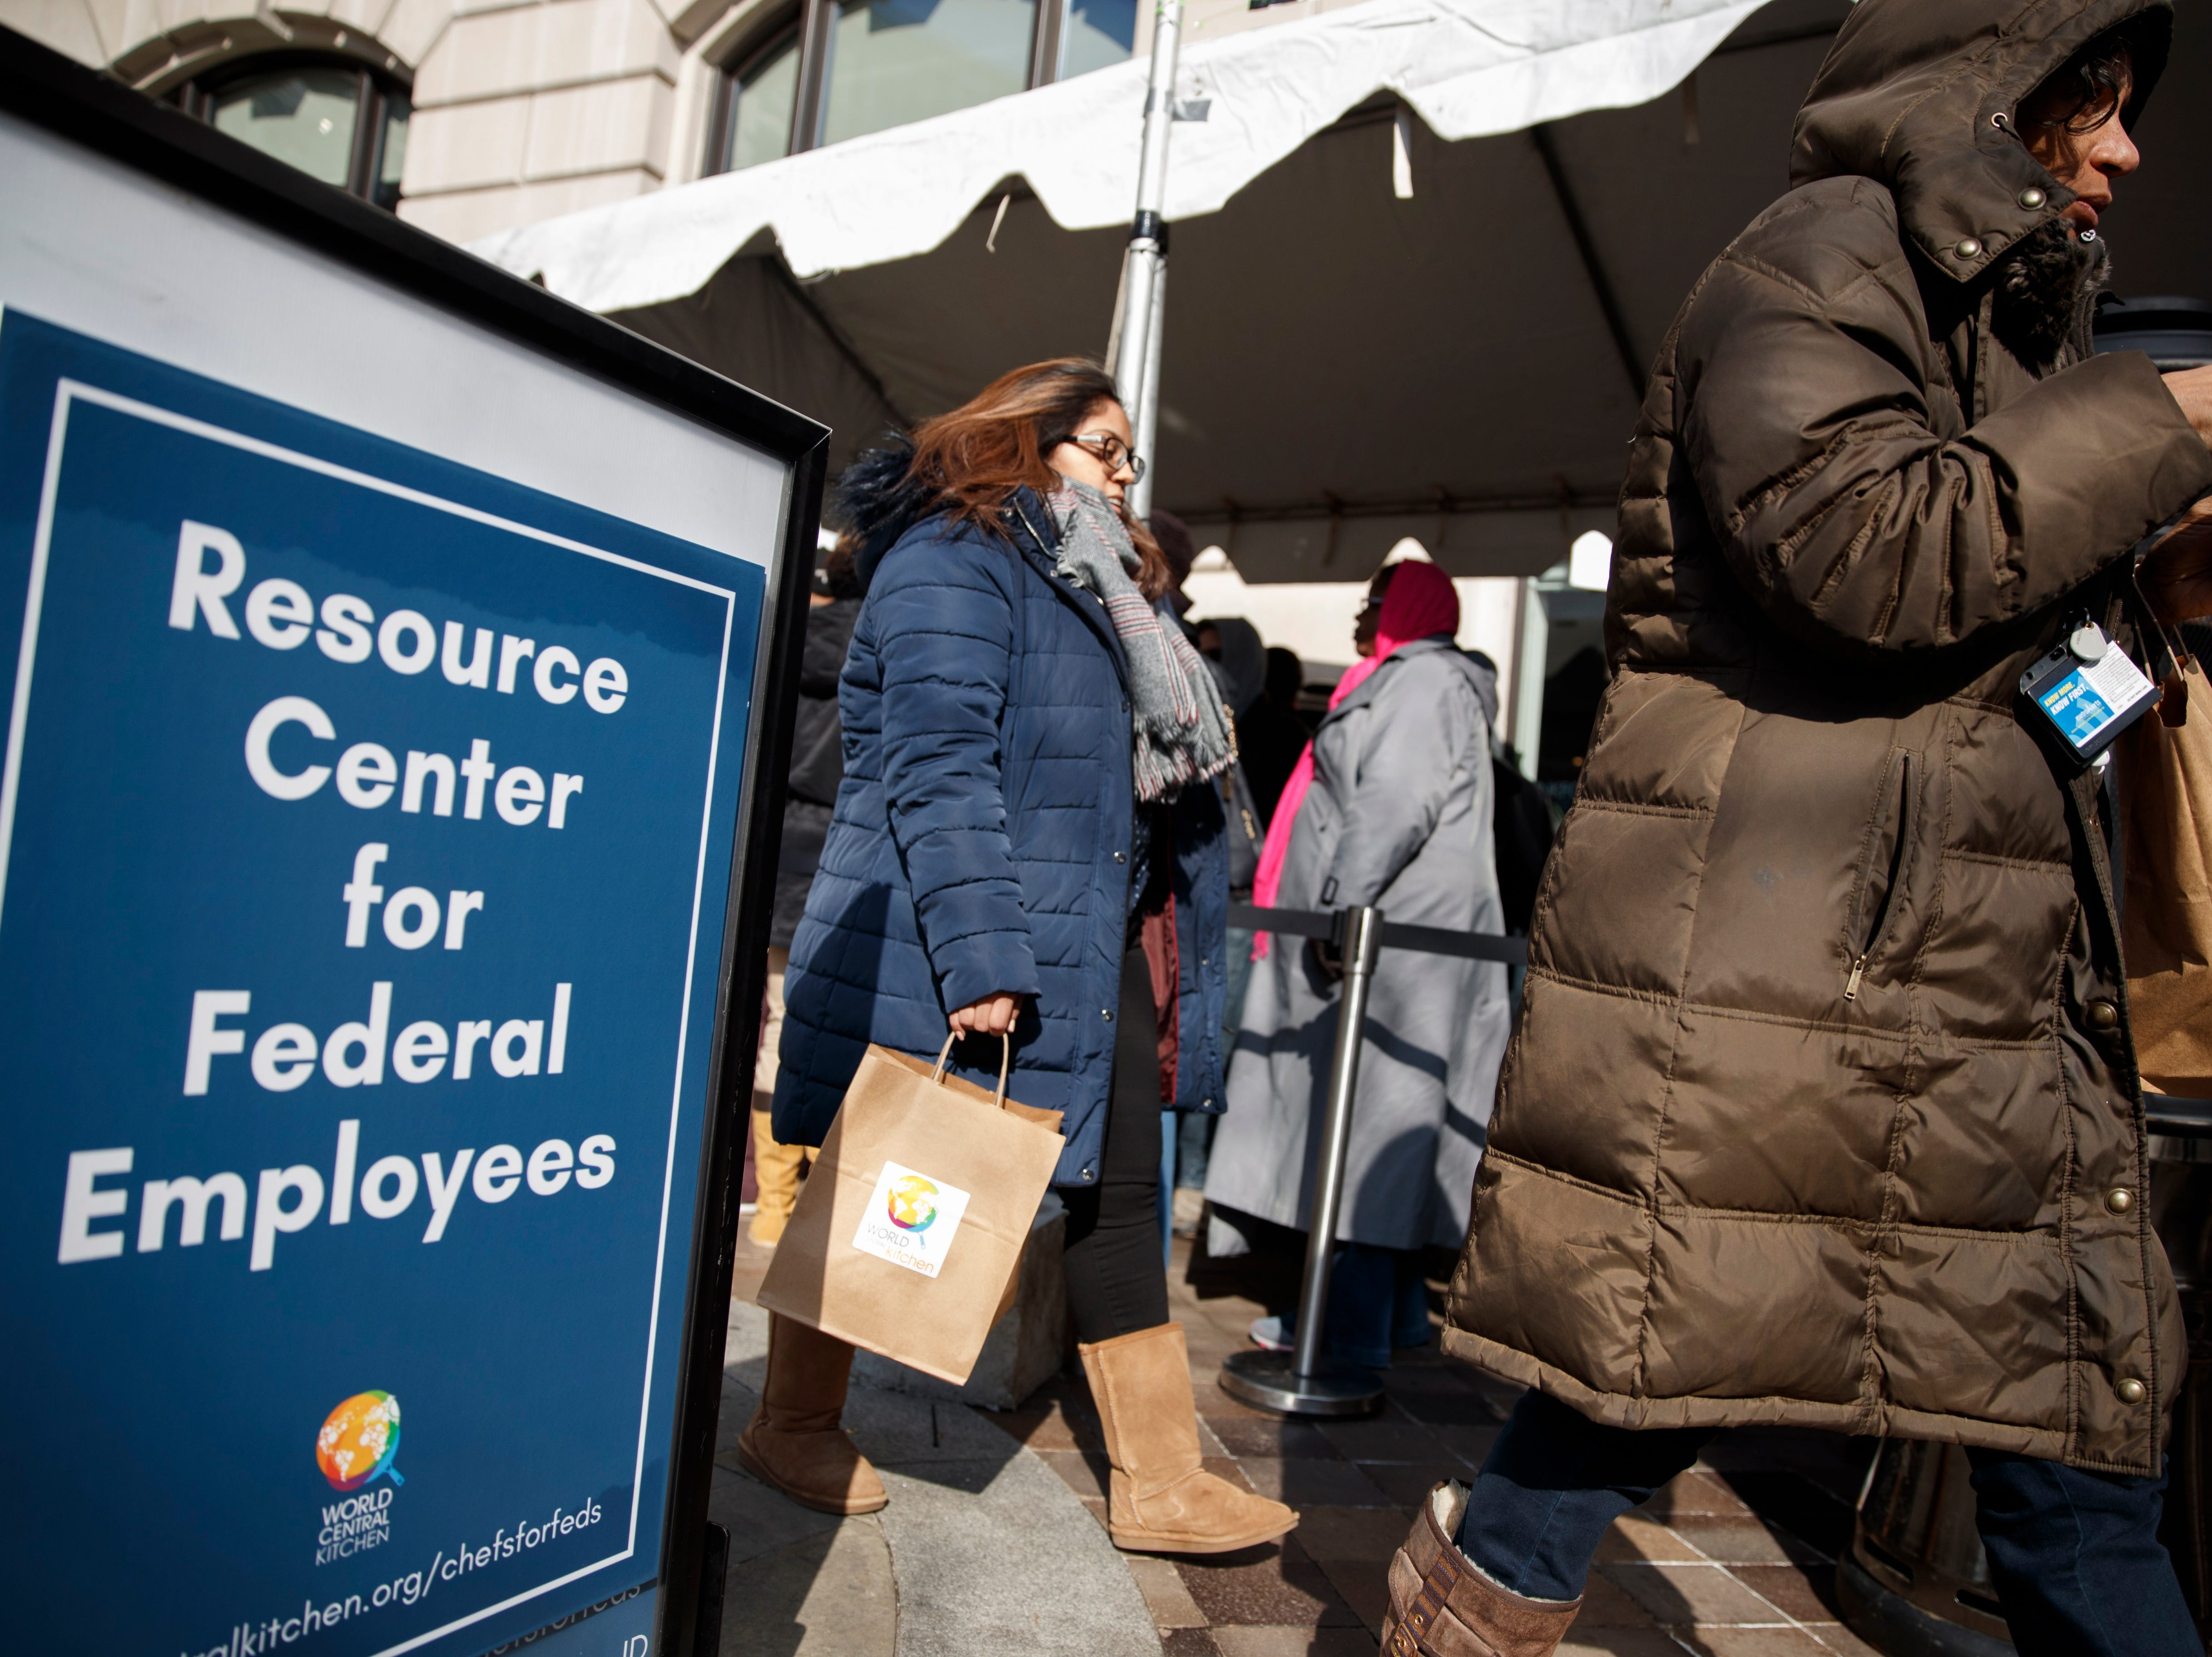 Federal furloughed employees line up to receive free lunch at the World Central Kitchen in Washington on Jan. 25, 2019. Washington DC Mayor Muriel Bowser, with chef Jose Andres, founder of World Central Kitchen, and chef Spike Mendelsohn hand out meals to federal furloughed employees in need.